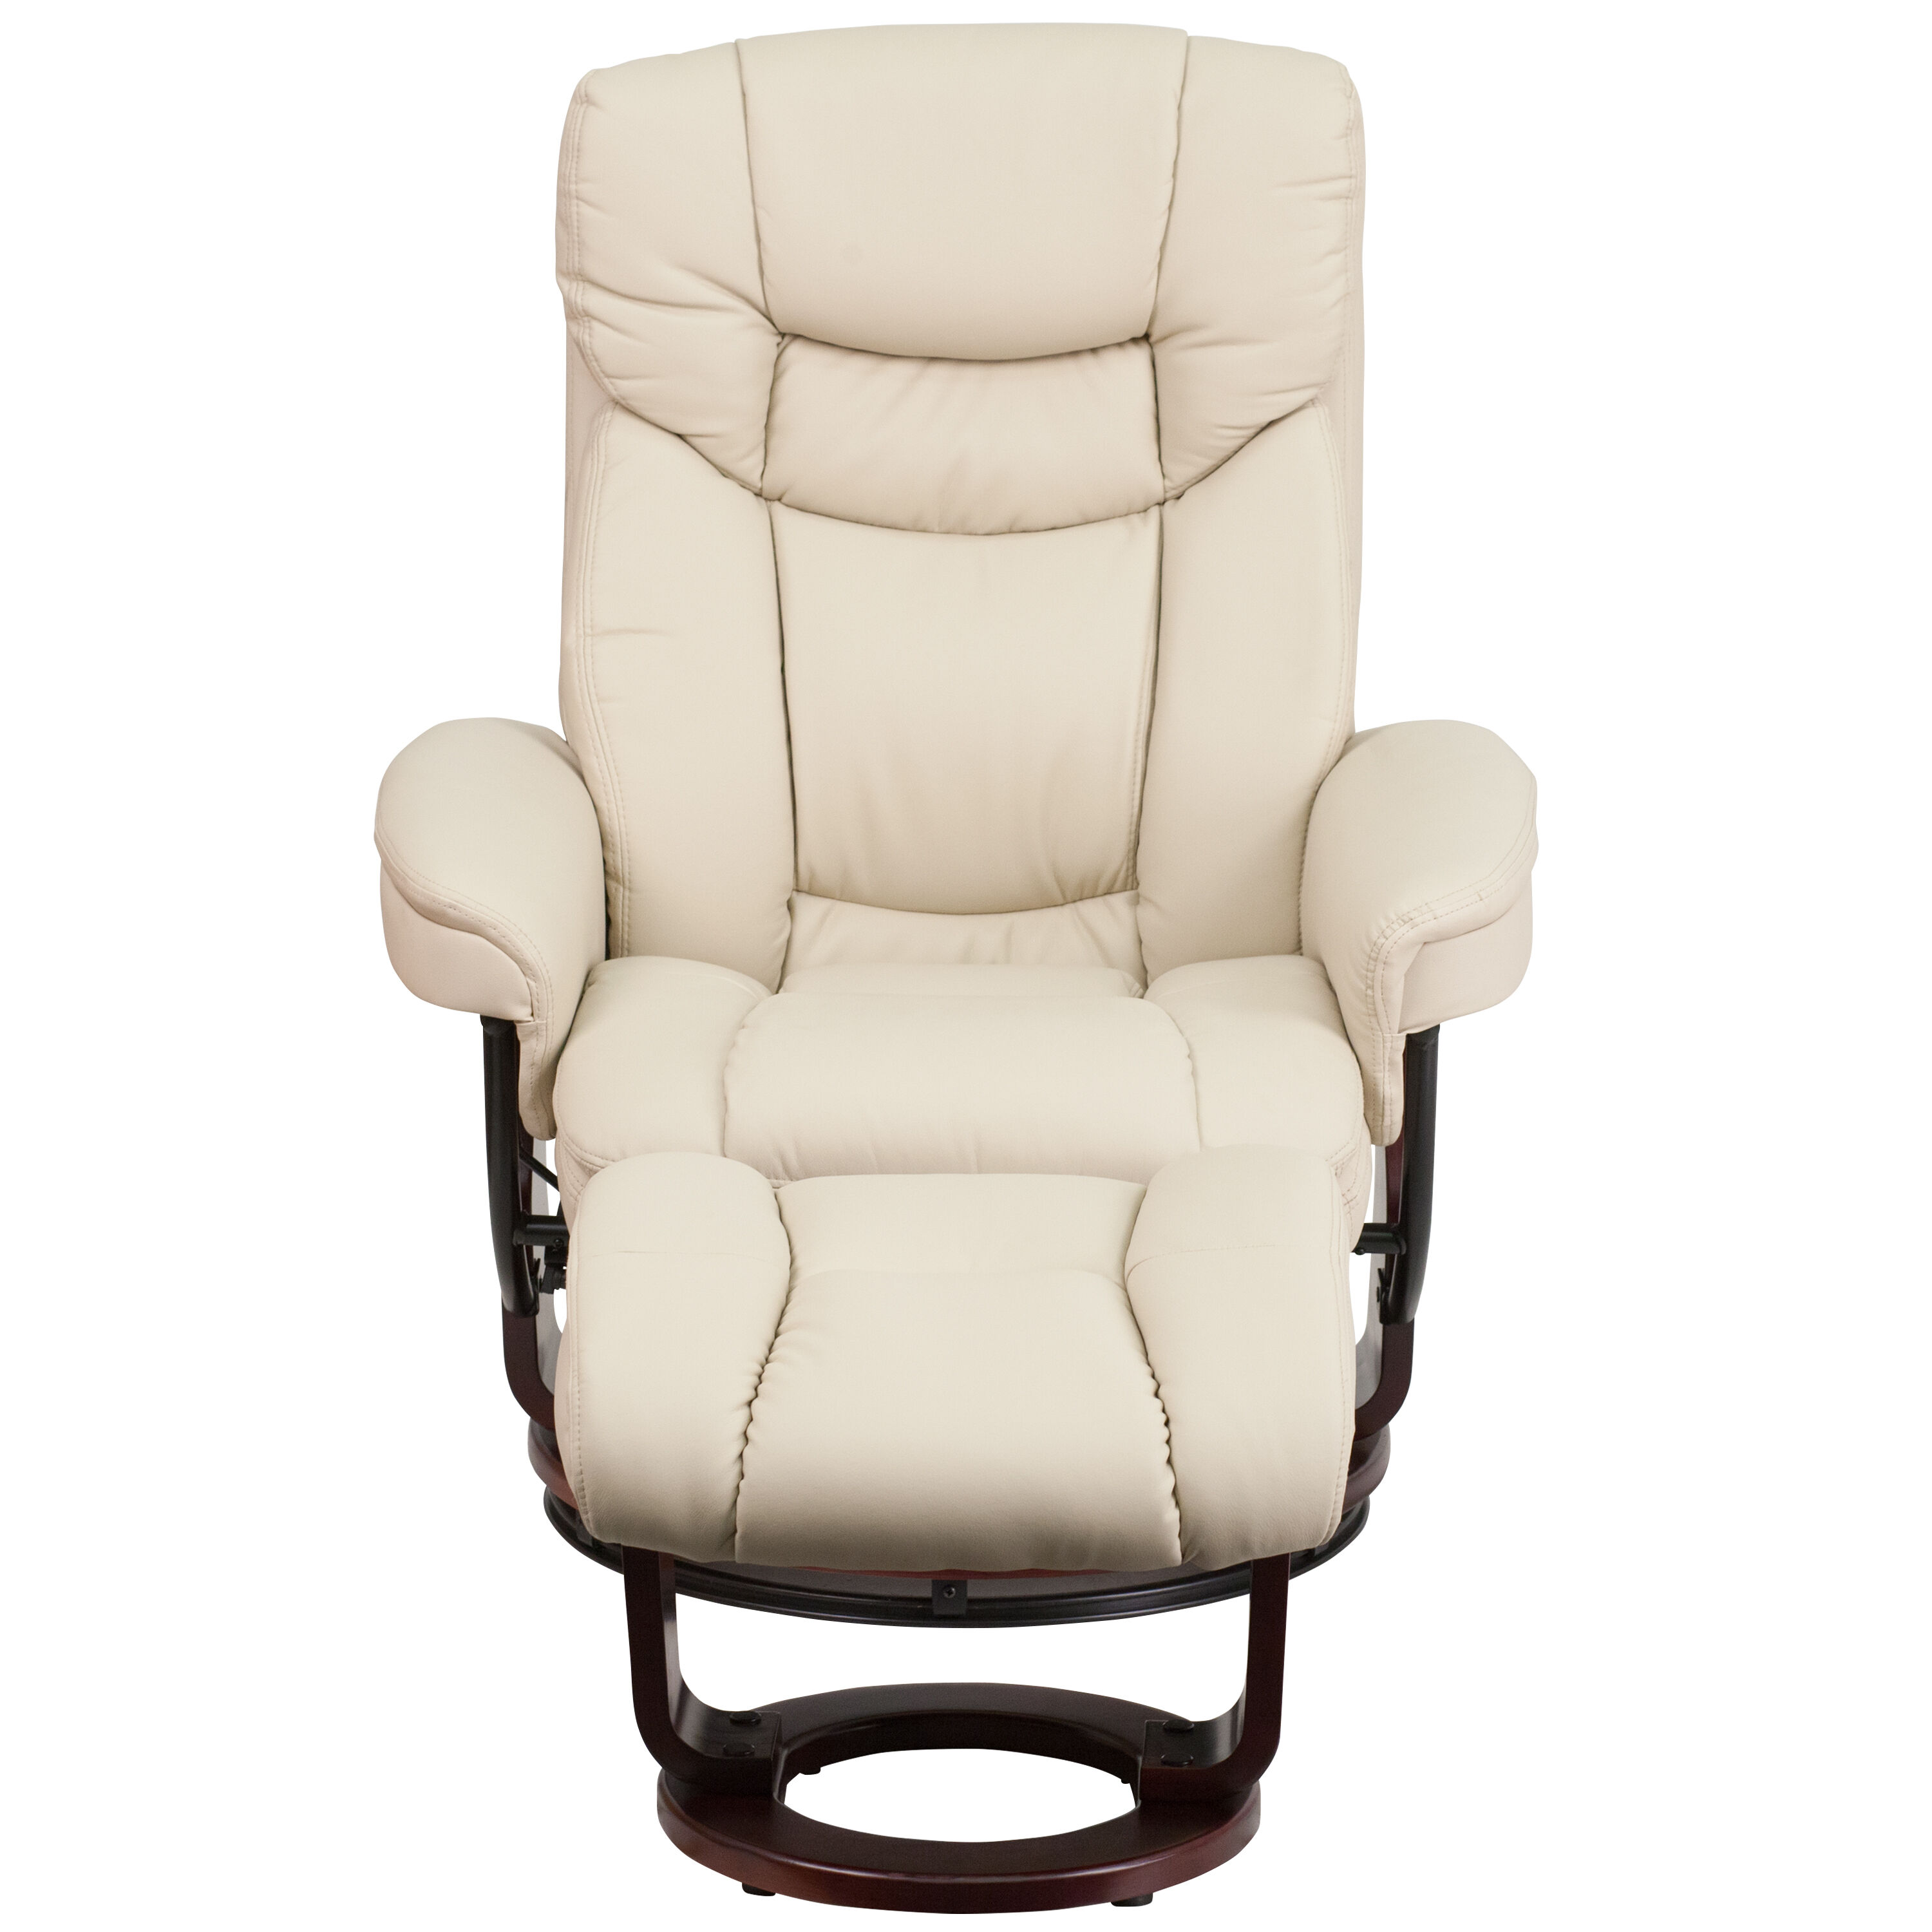 Beautiful ... Our Contemporary Beige Leather Recliner And Ottoman With Swiveling  Mahogany Wood Base Is On Sale Now ...